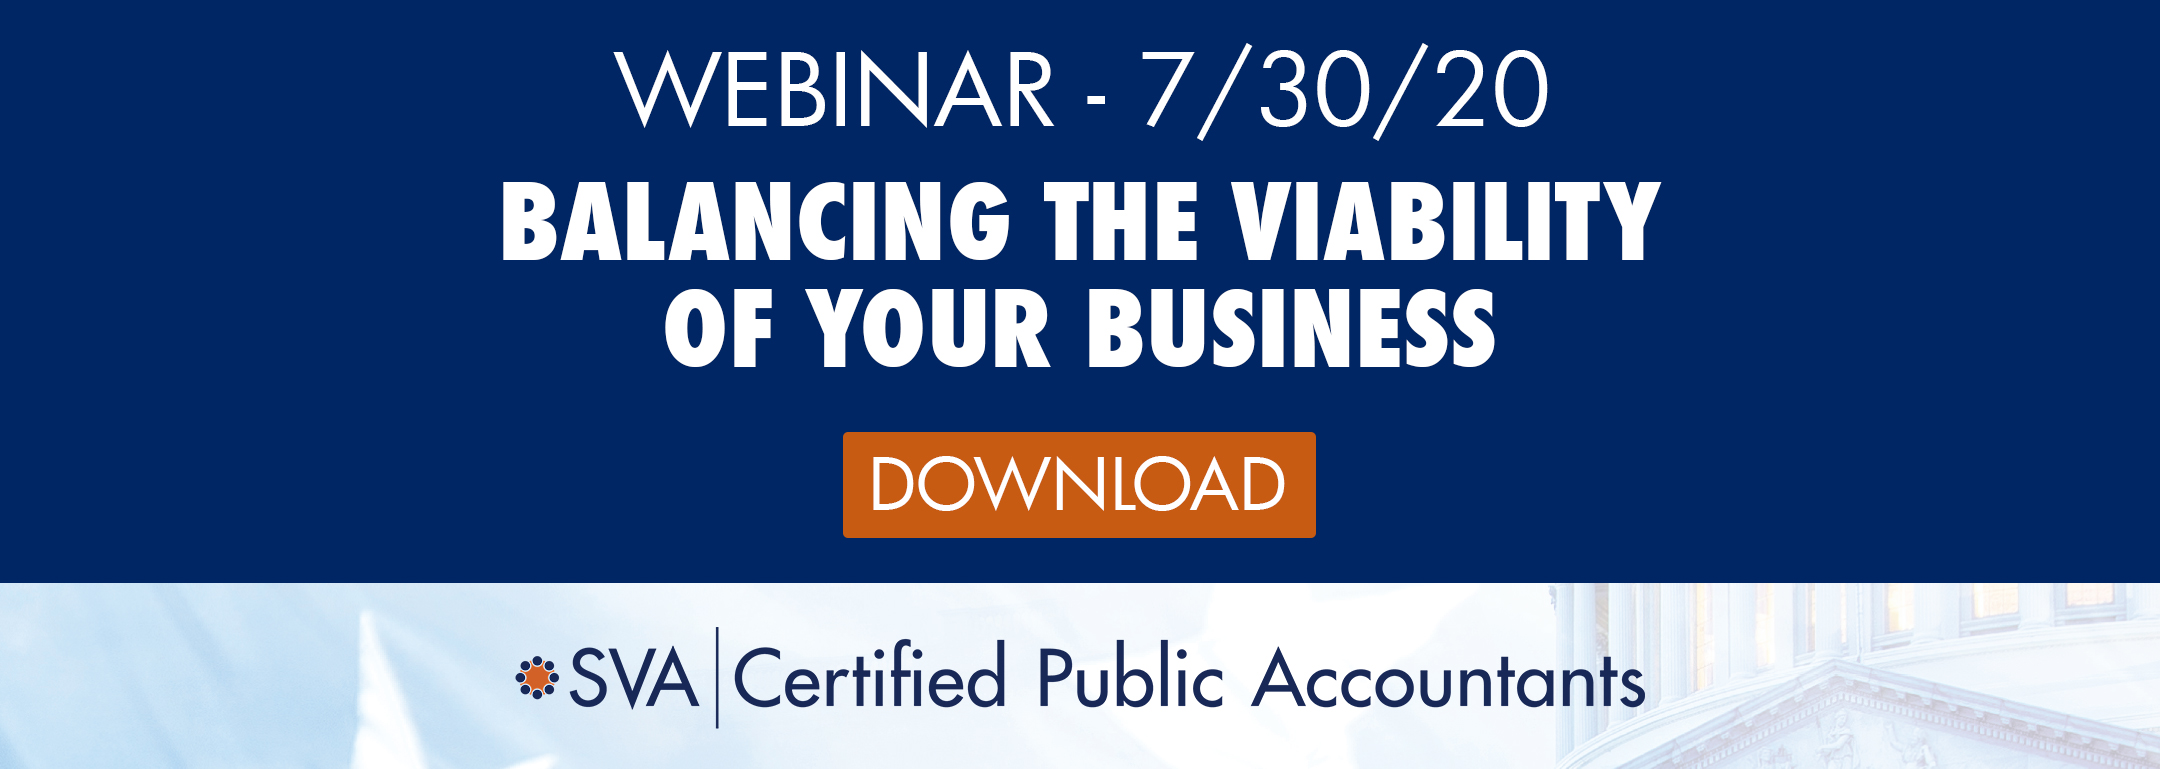 Balancing the Viability of Your Business